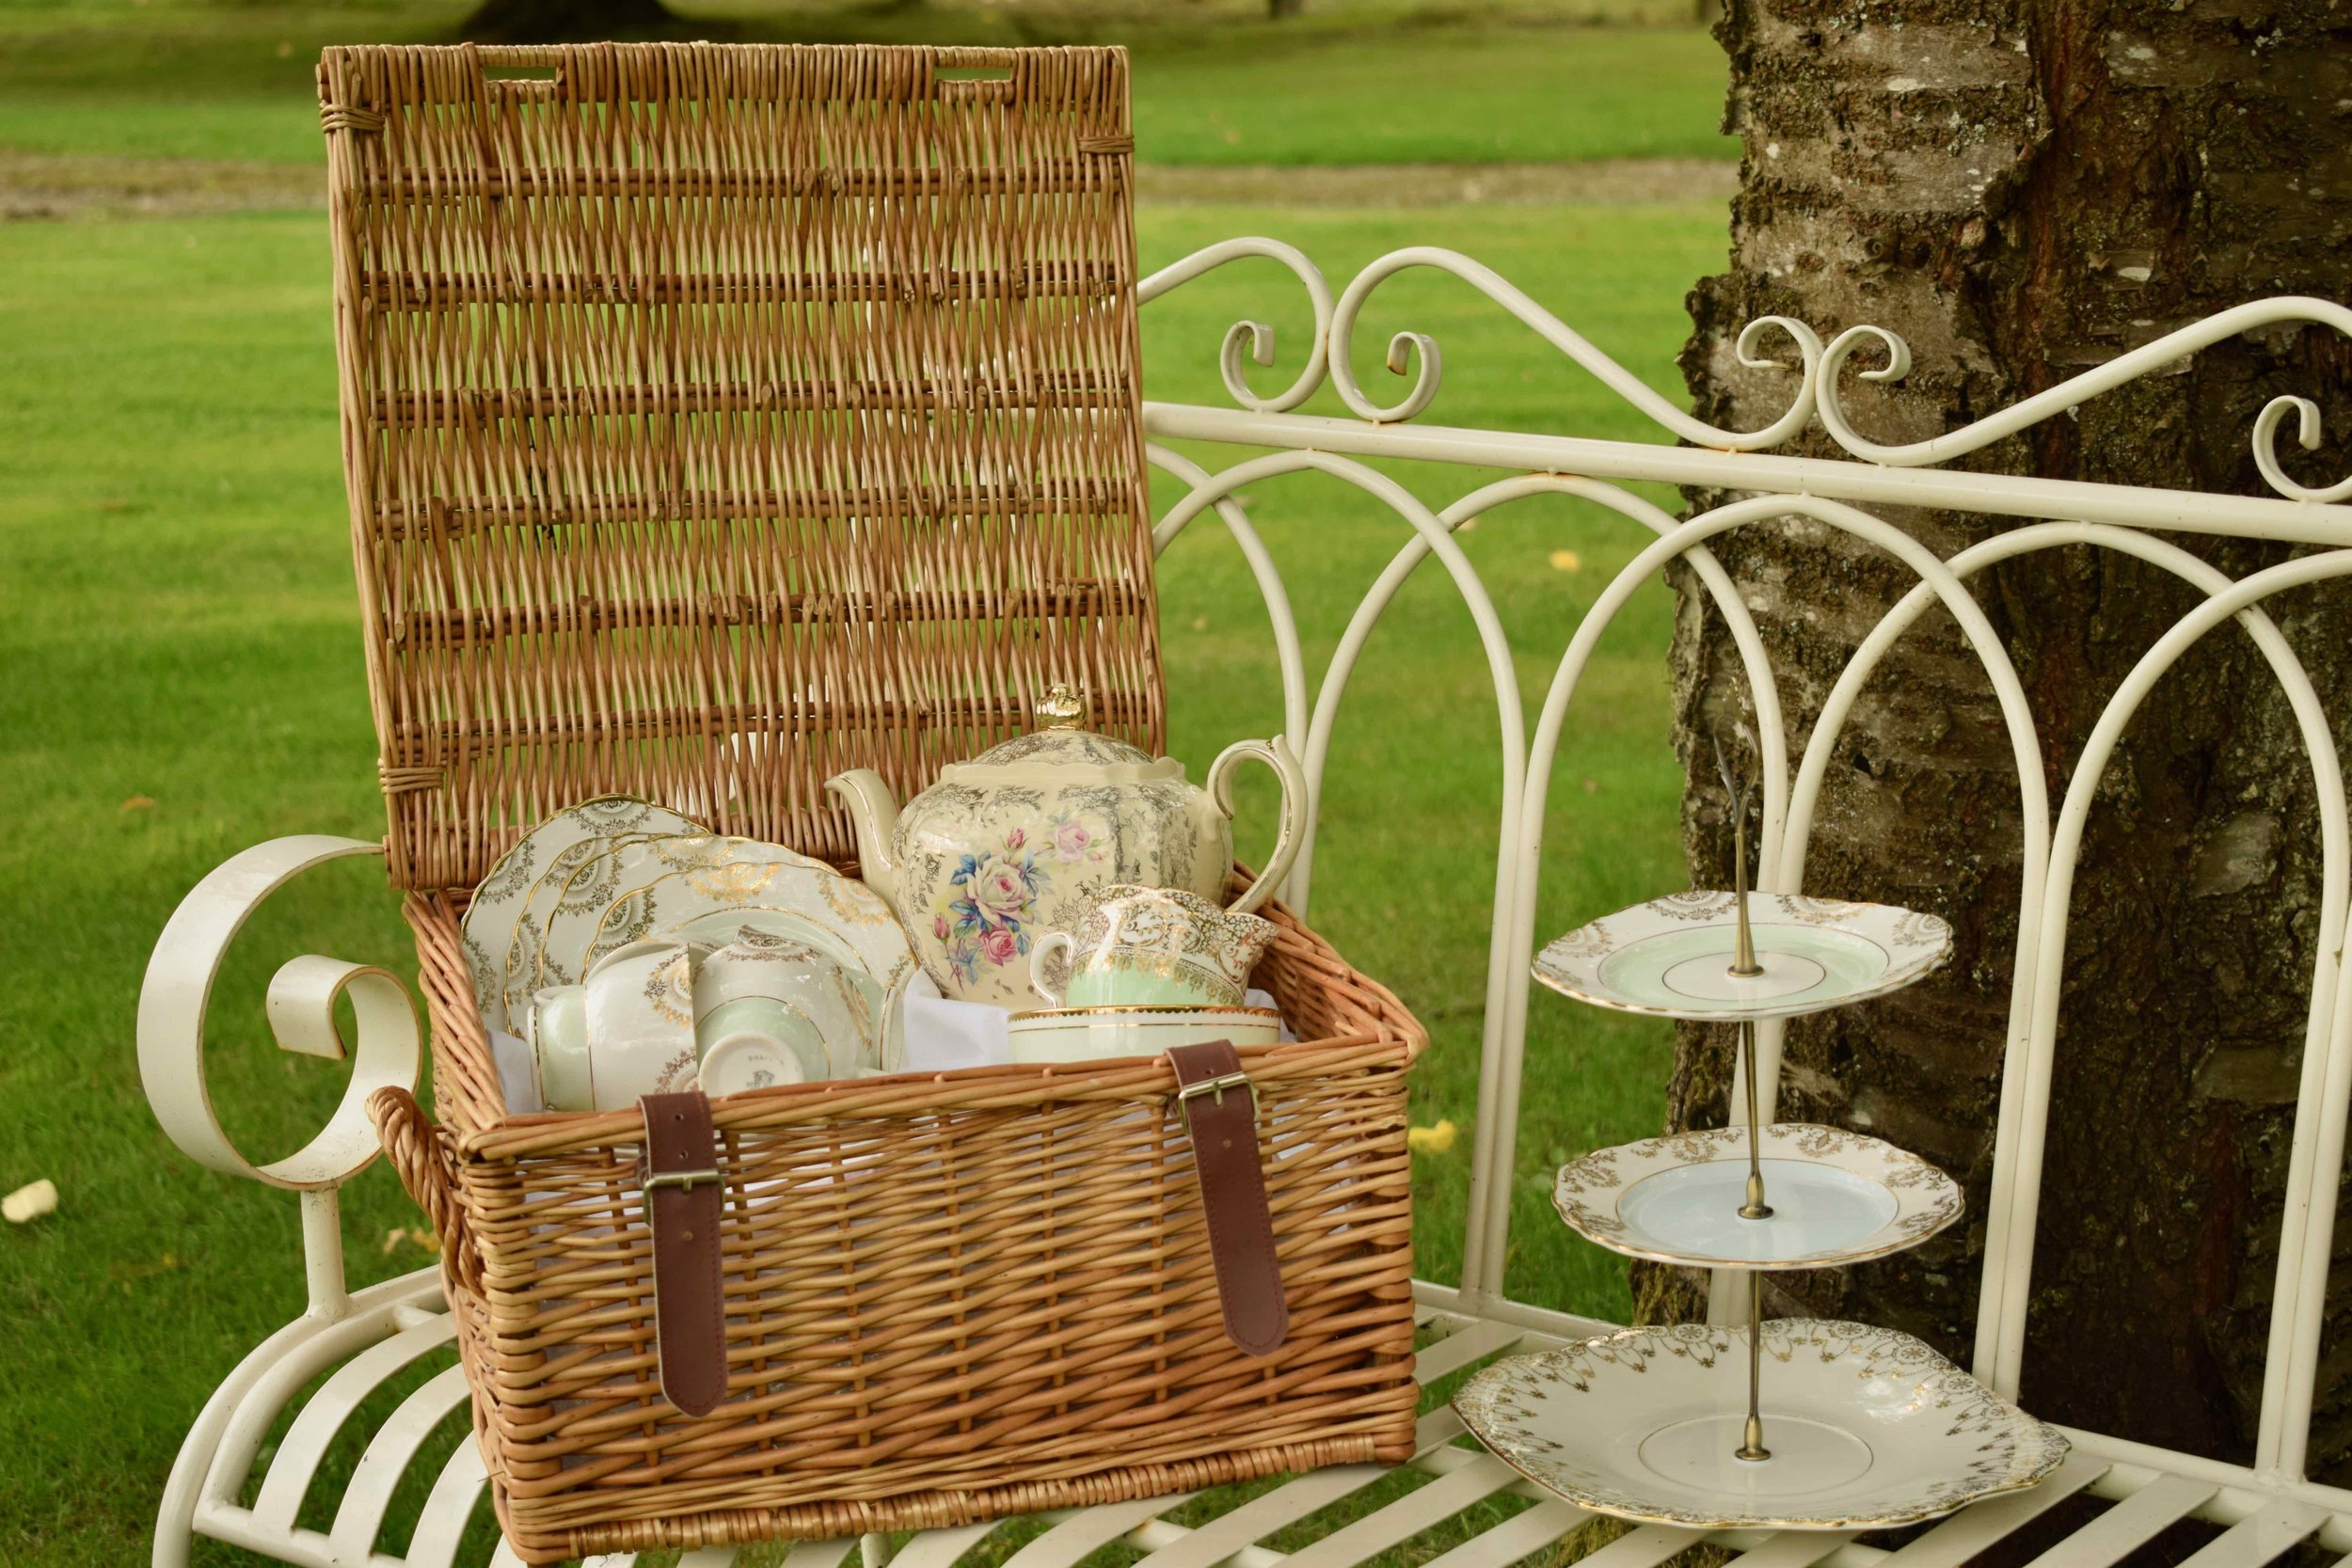 Tea With Friends - Vintage china hire for four people, arrives in a Fortnum's Hamper!